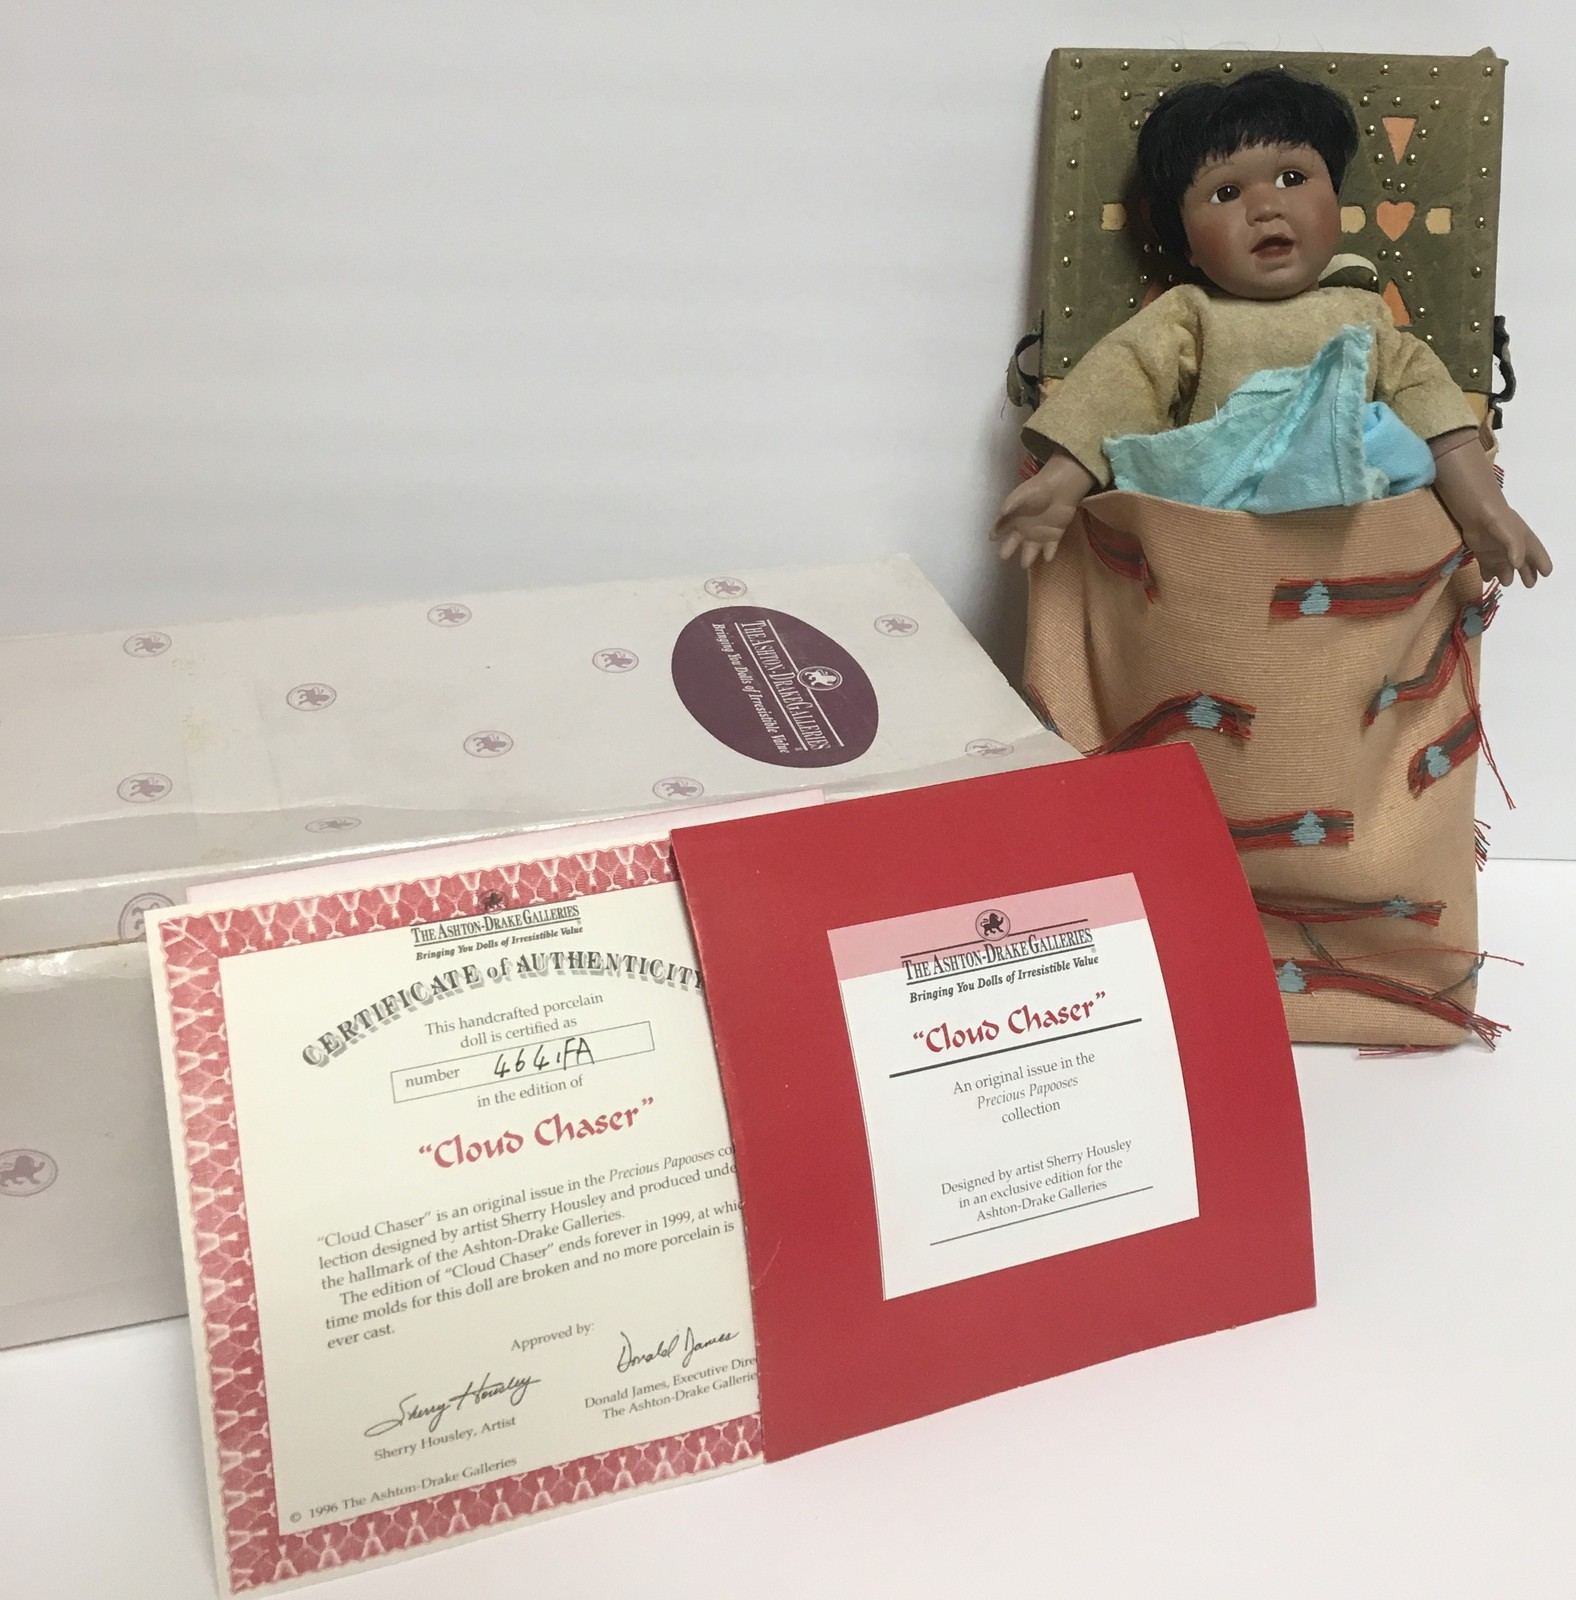 Cloud Chaser Native American Doll Papoose Ashton-Drake Galleries image 2